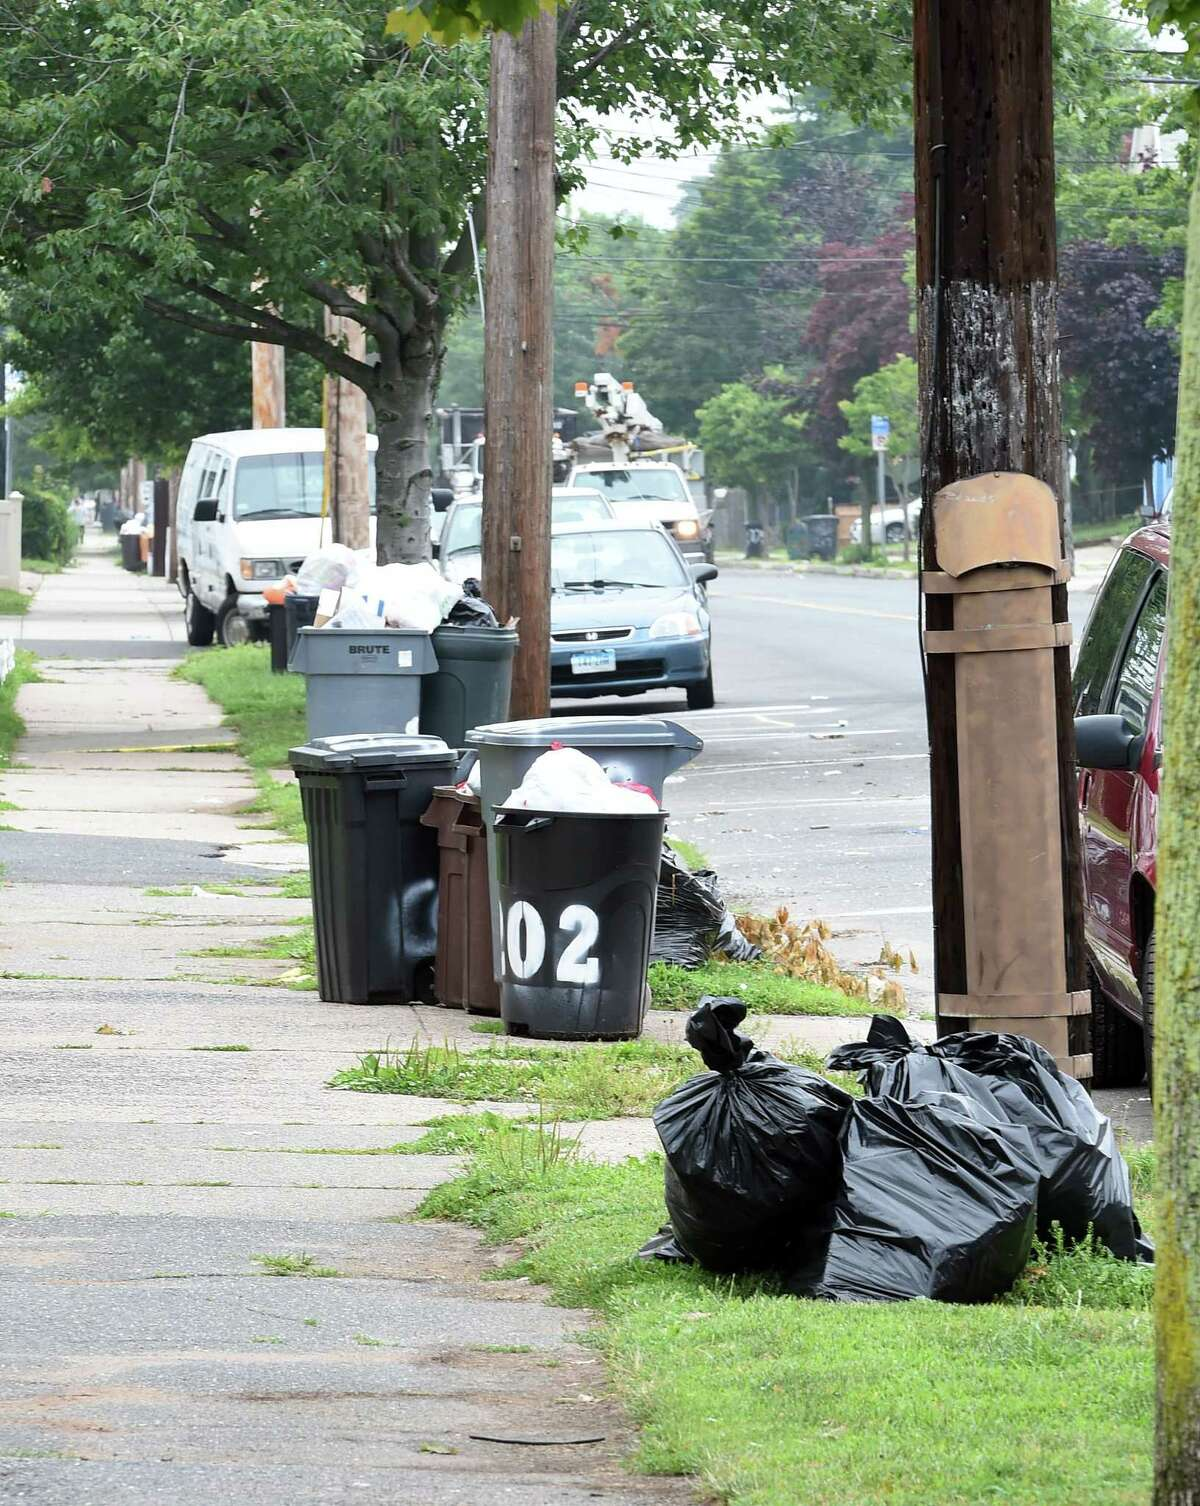 Weekly trash piled in front of homes in West Haven in this file photo.